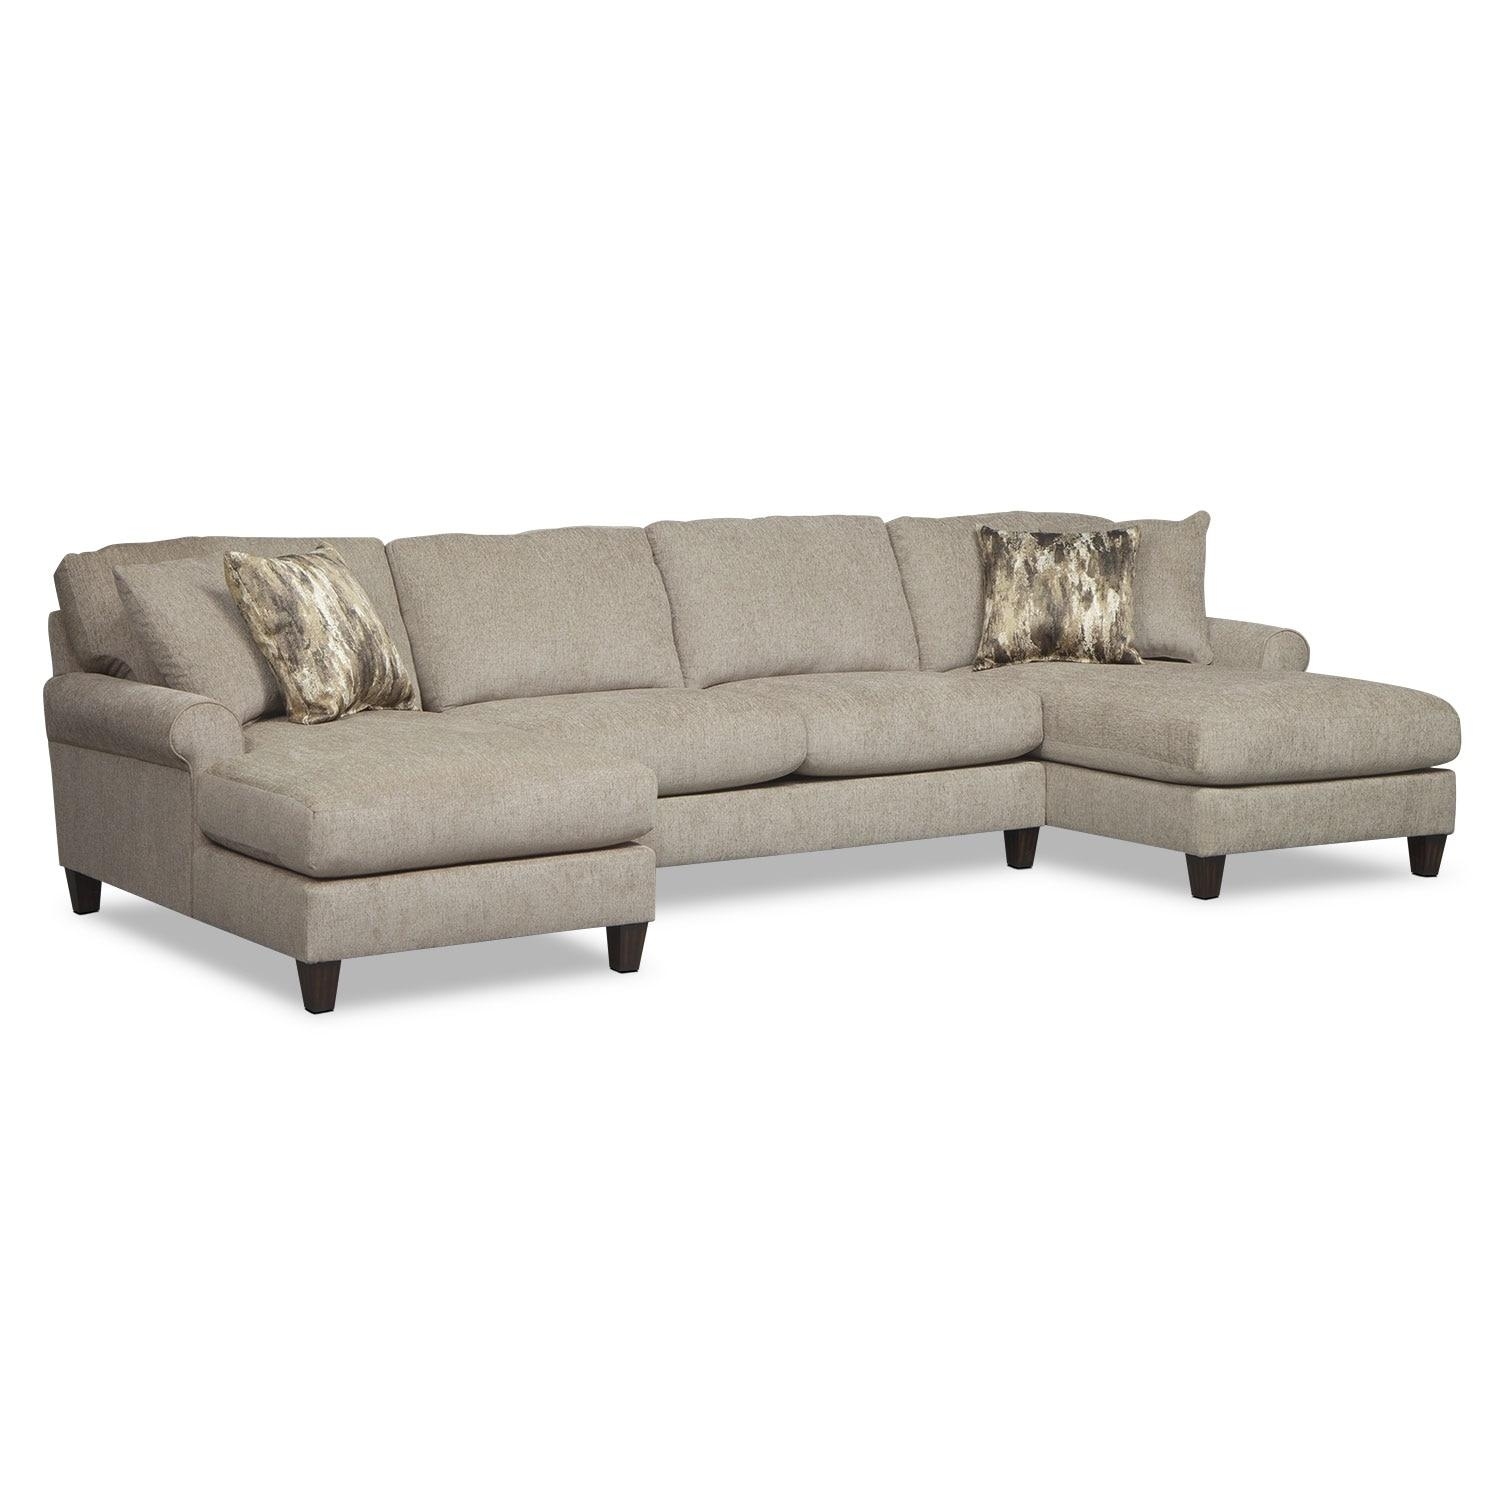 Karma 3 Piece Sectional With 2 Chaises – Mink | Value City Furniture With Sectional With 2 Chaises (Image 6 of 20)